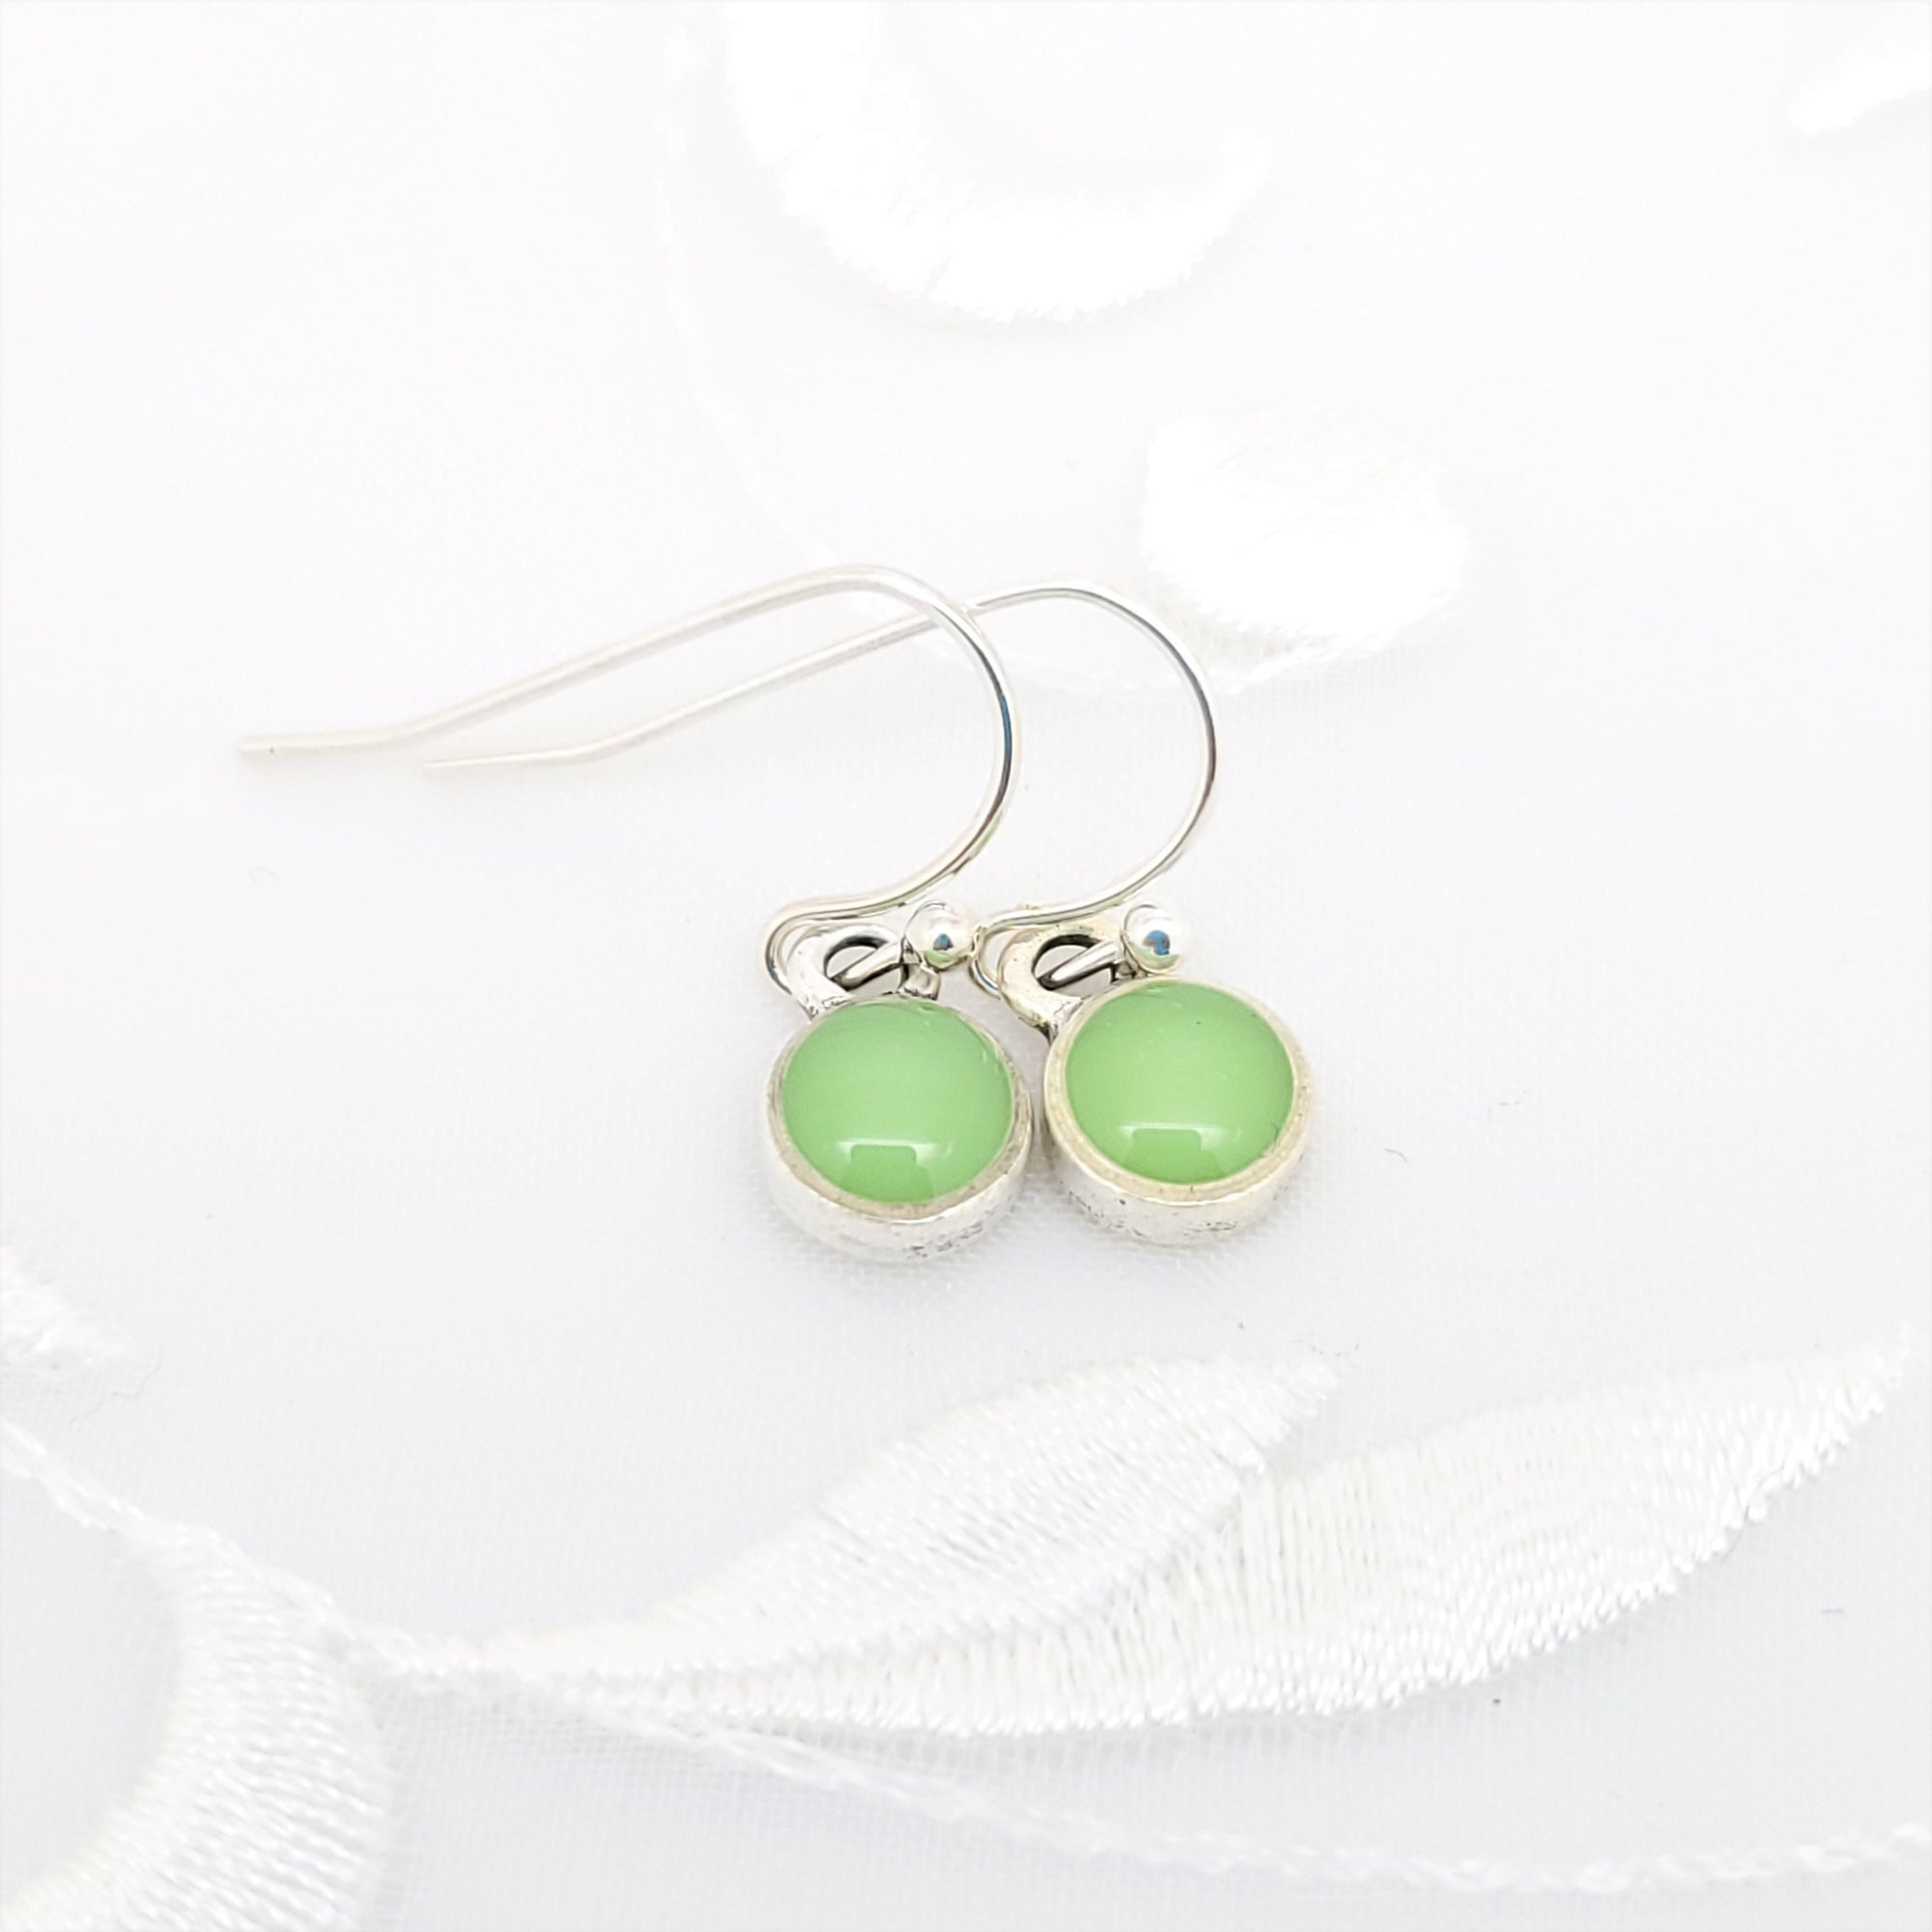 Antique Silver Tiny Round Earrings with Lime Green Resin